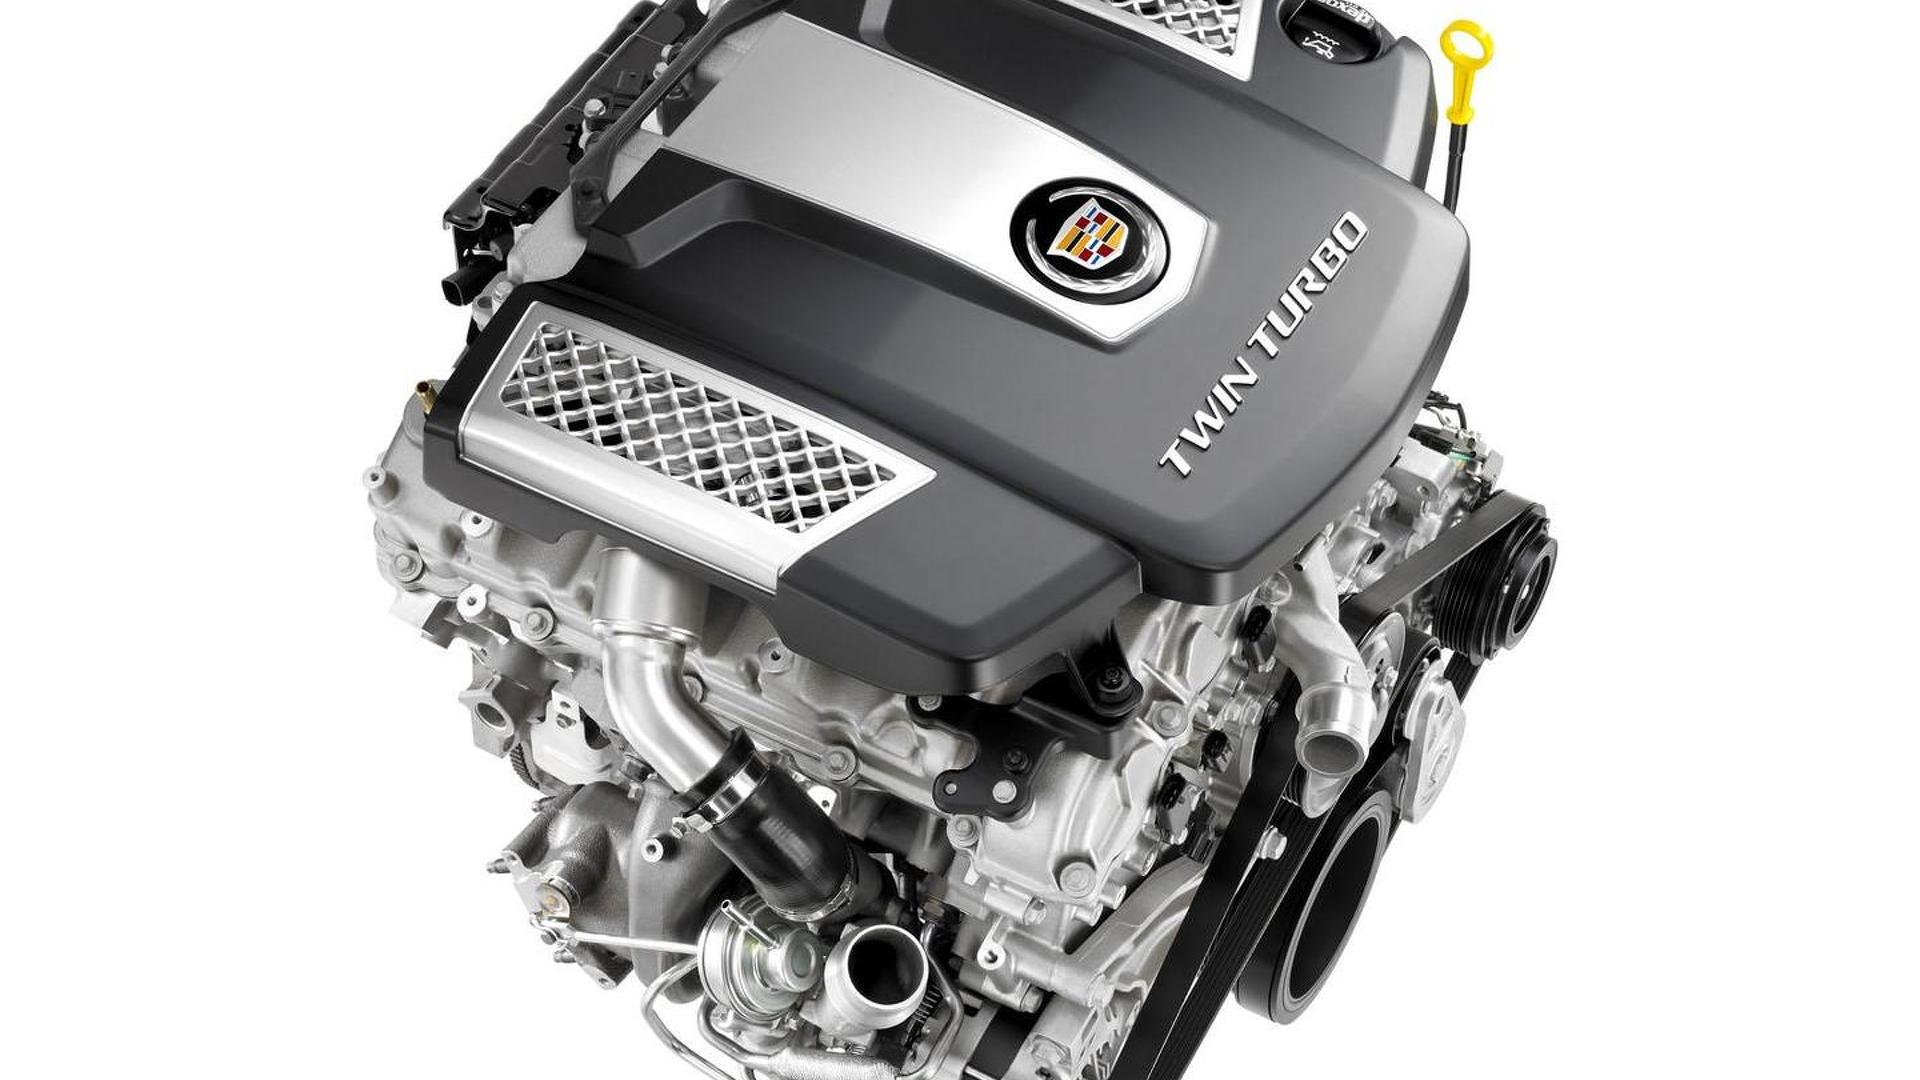 Cadillac 3.6-liter twin-turbo V6 engine gets detailed | Motor1.com